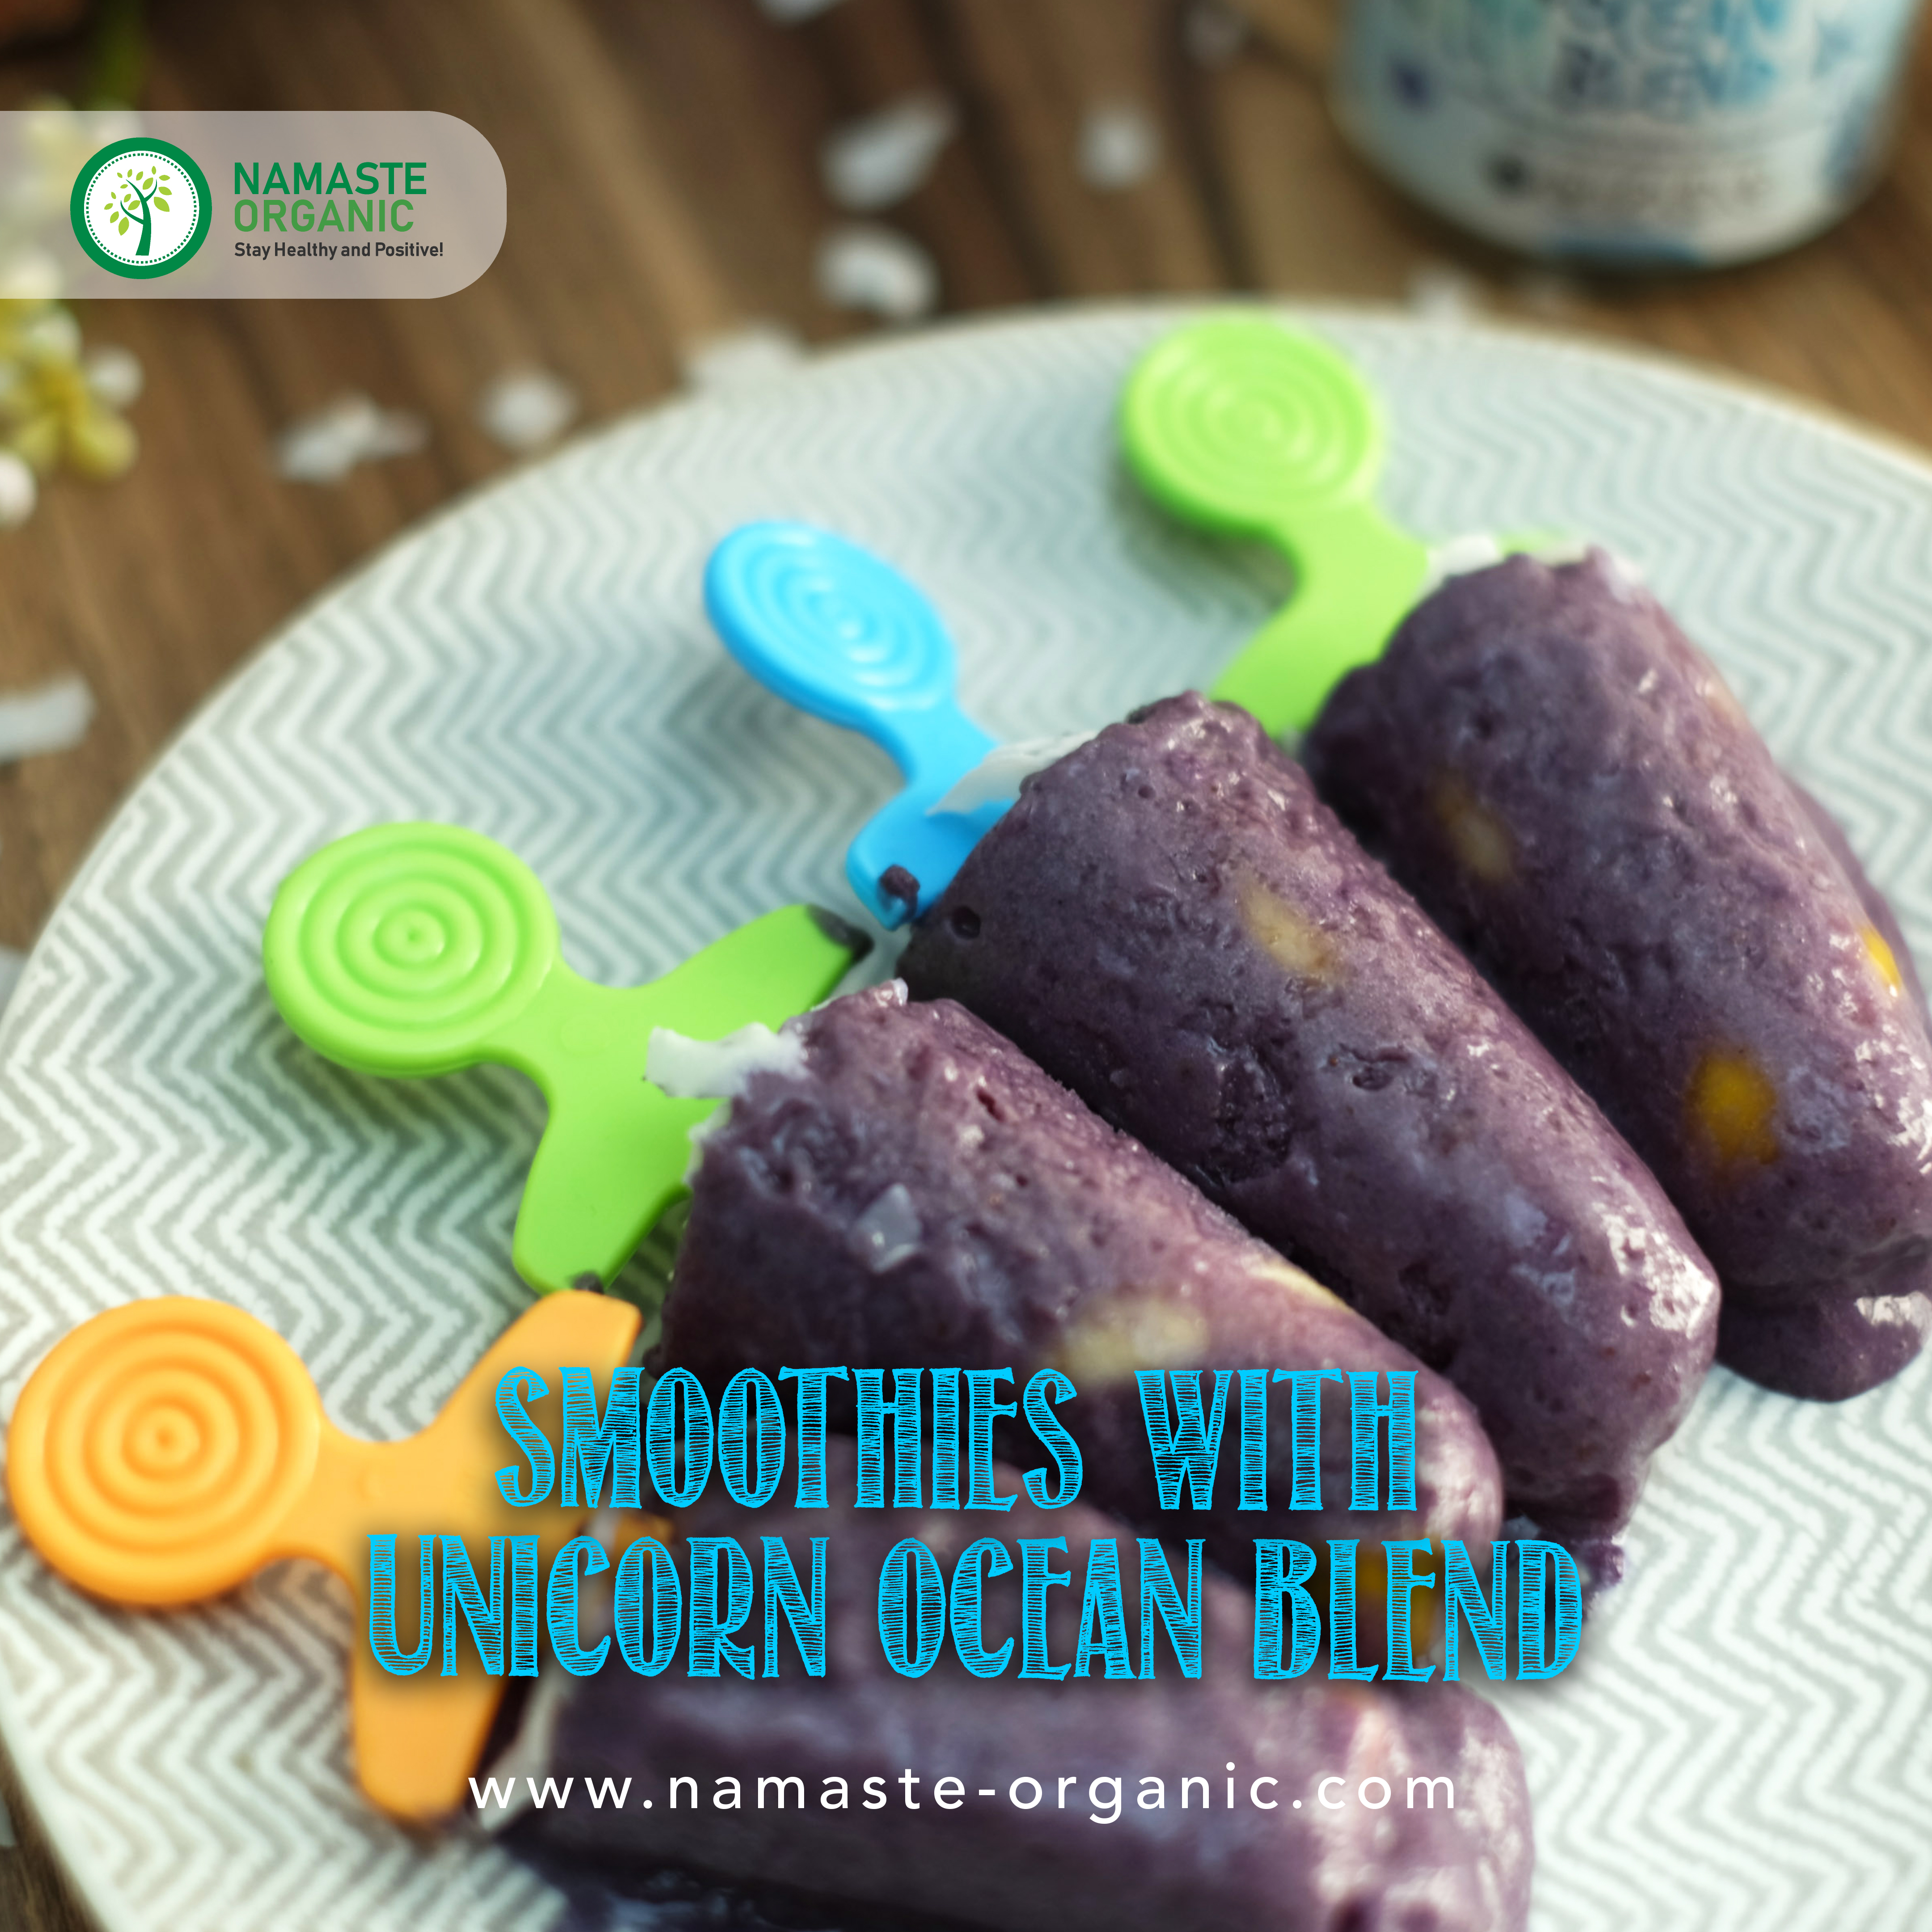 SMOOTHIES WITH UNICORN OCEAN BLEND image